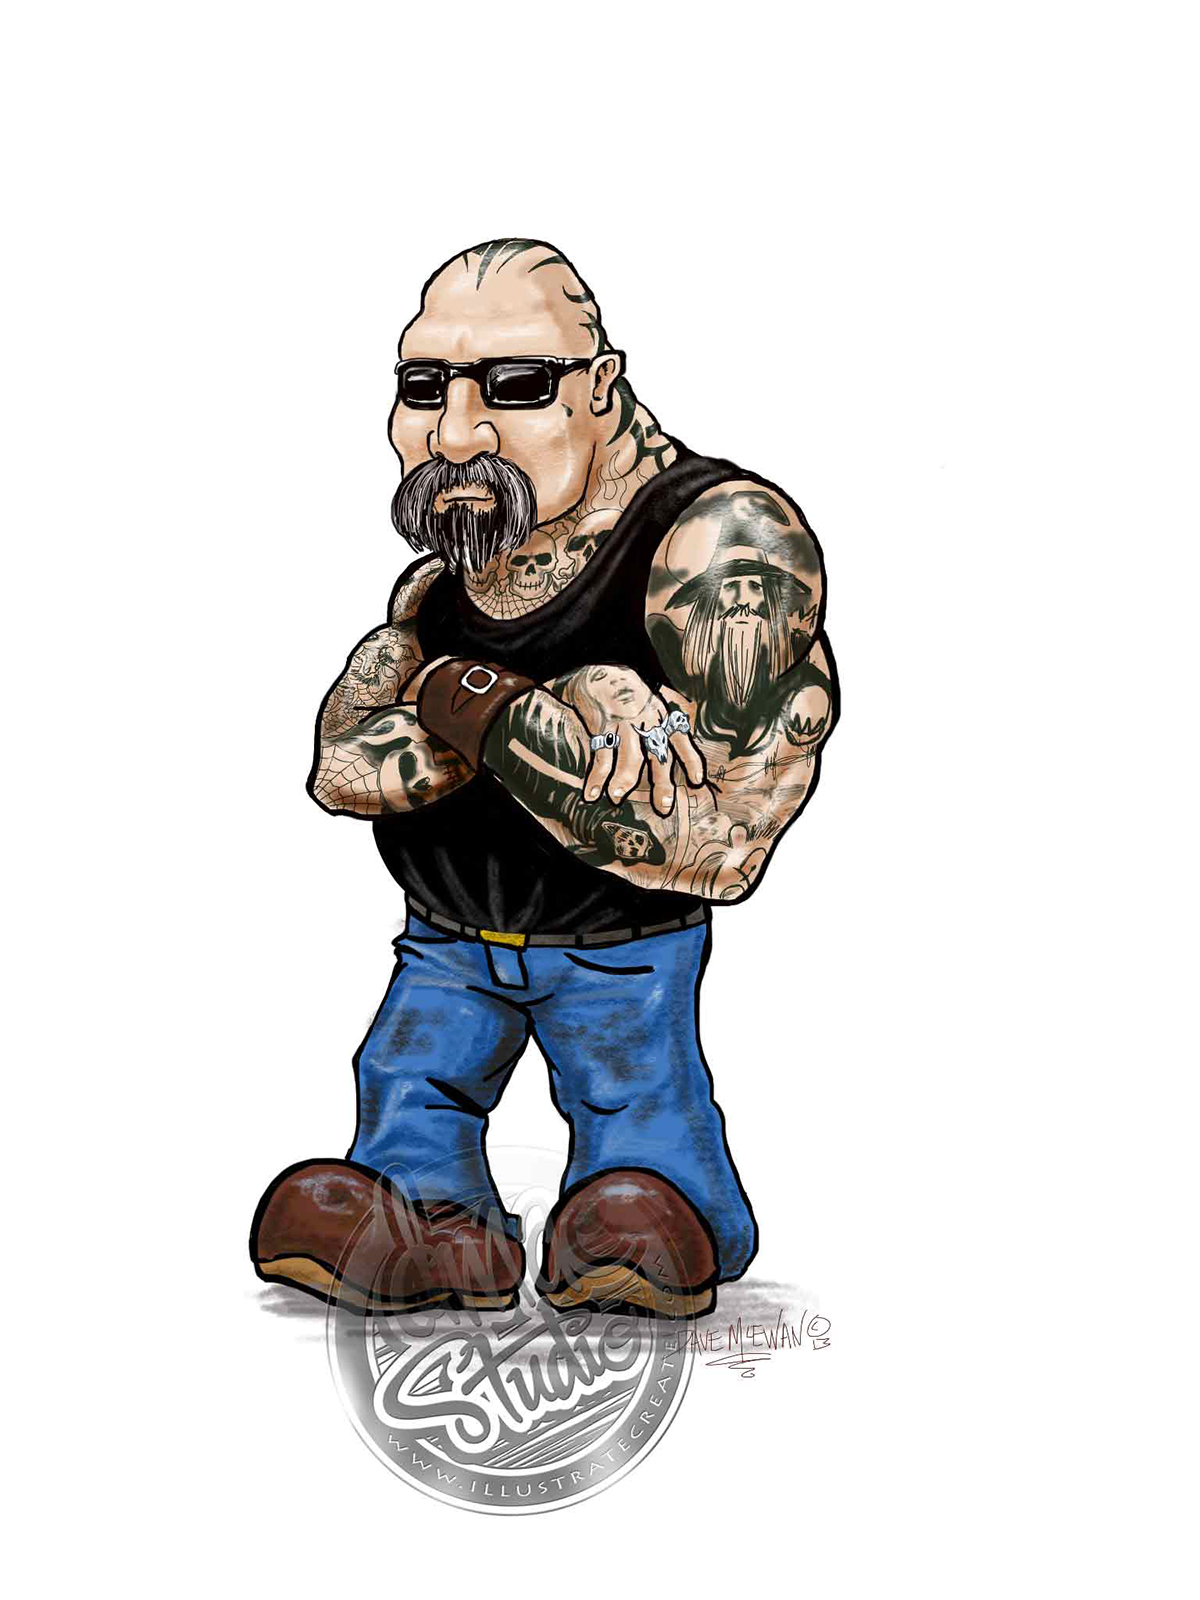 Cartoon bikie